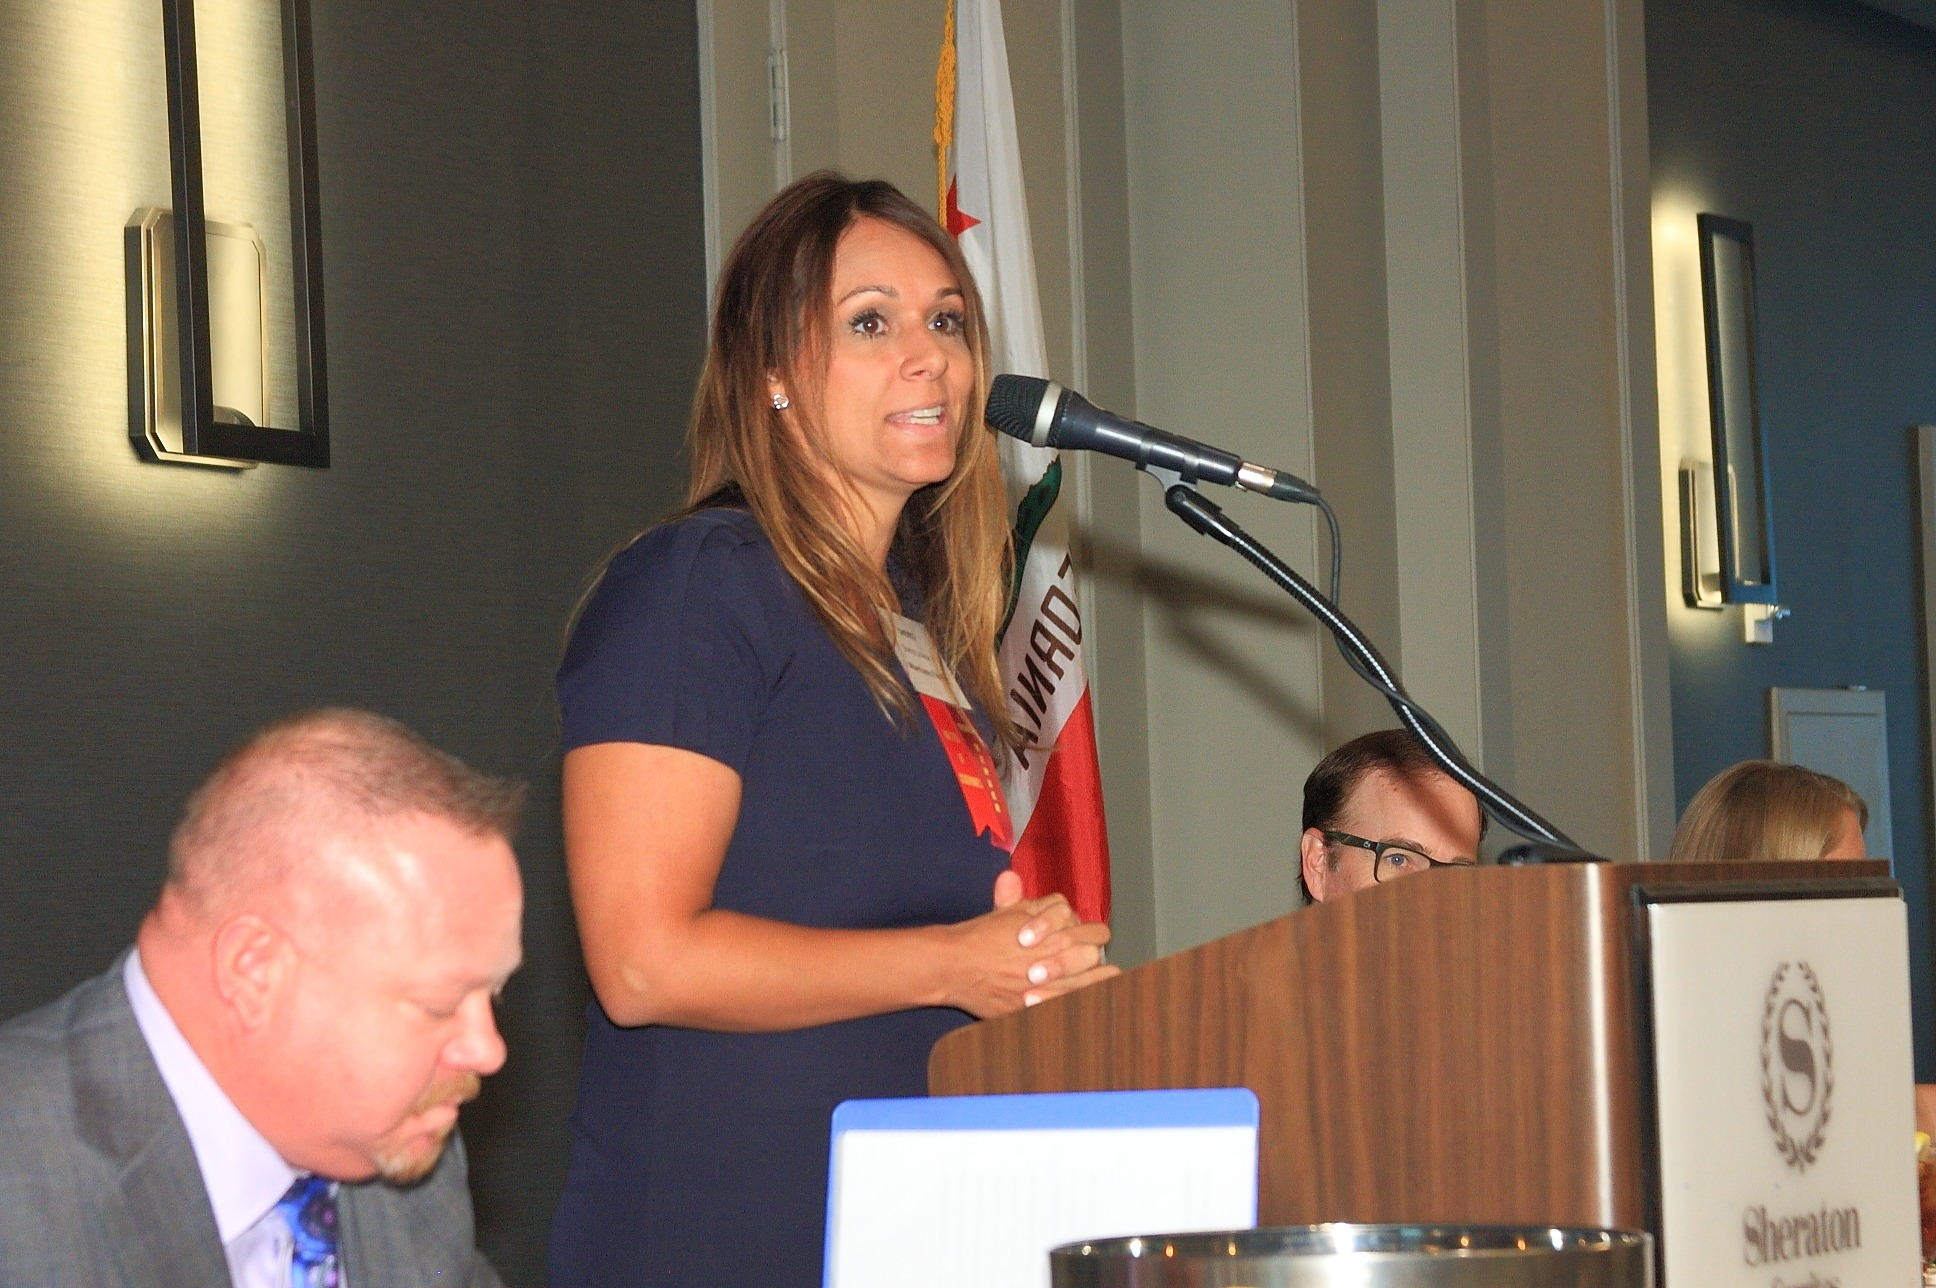 Master of Ceremonies Sheryl Salazar of Albertsons/Vons.